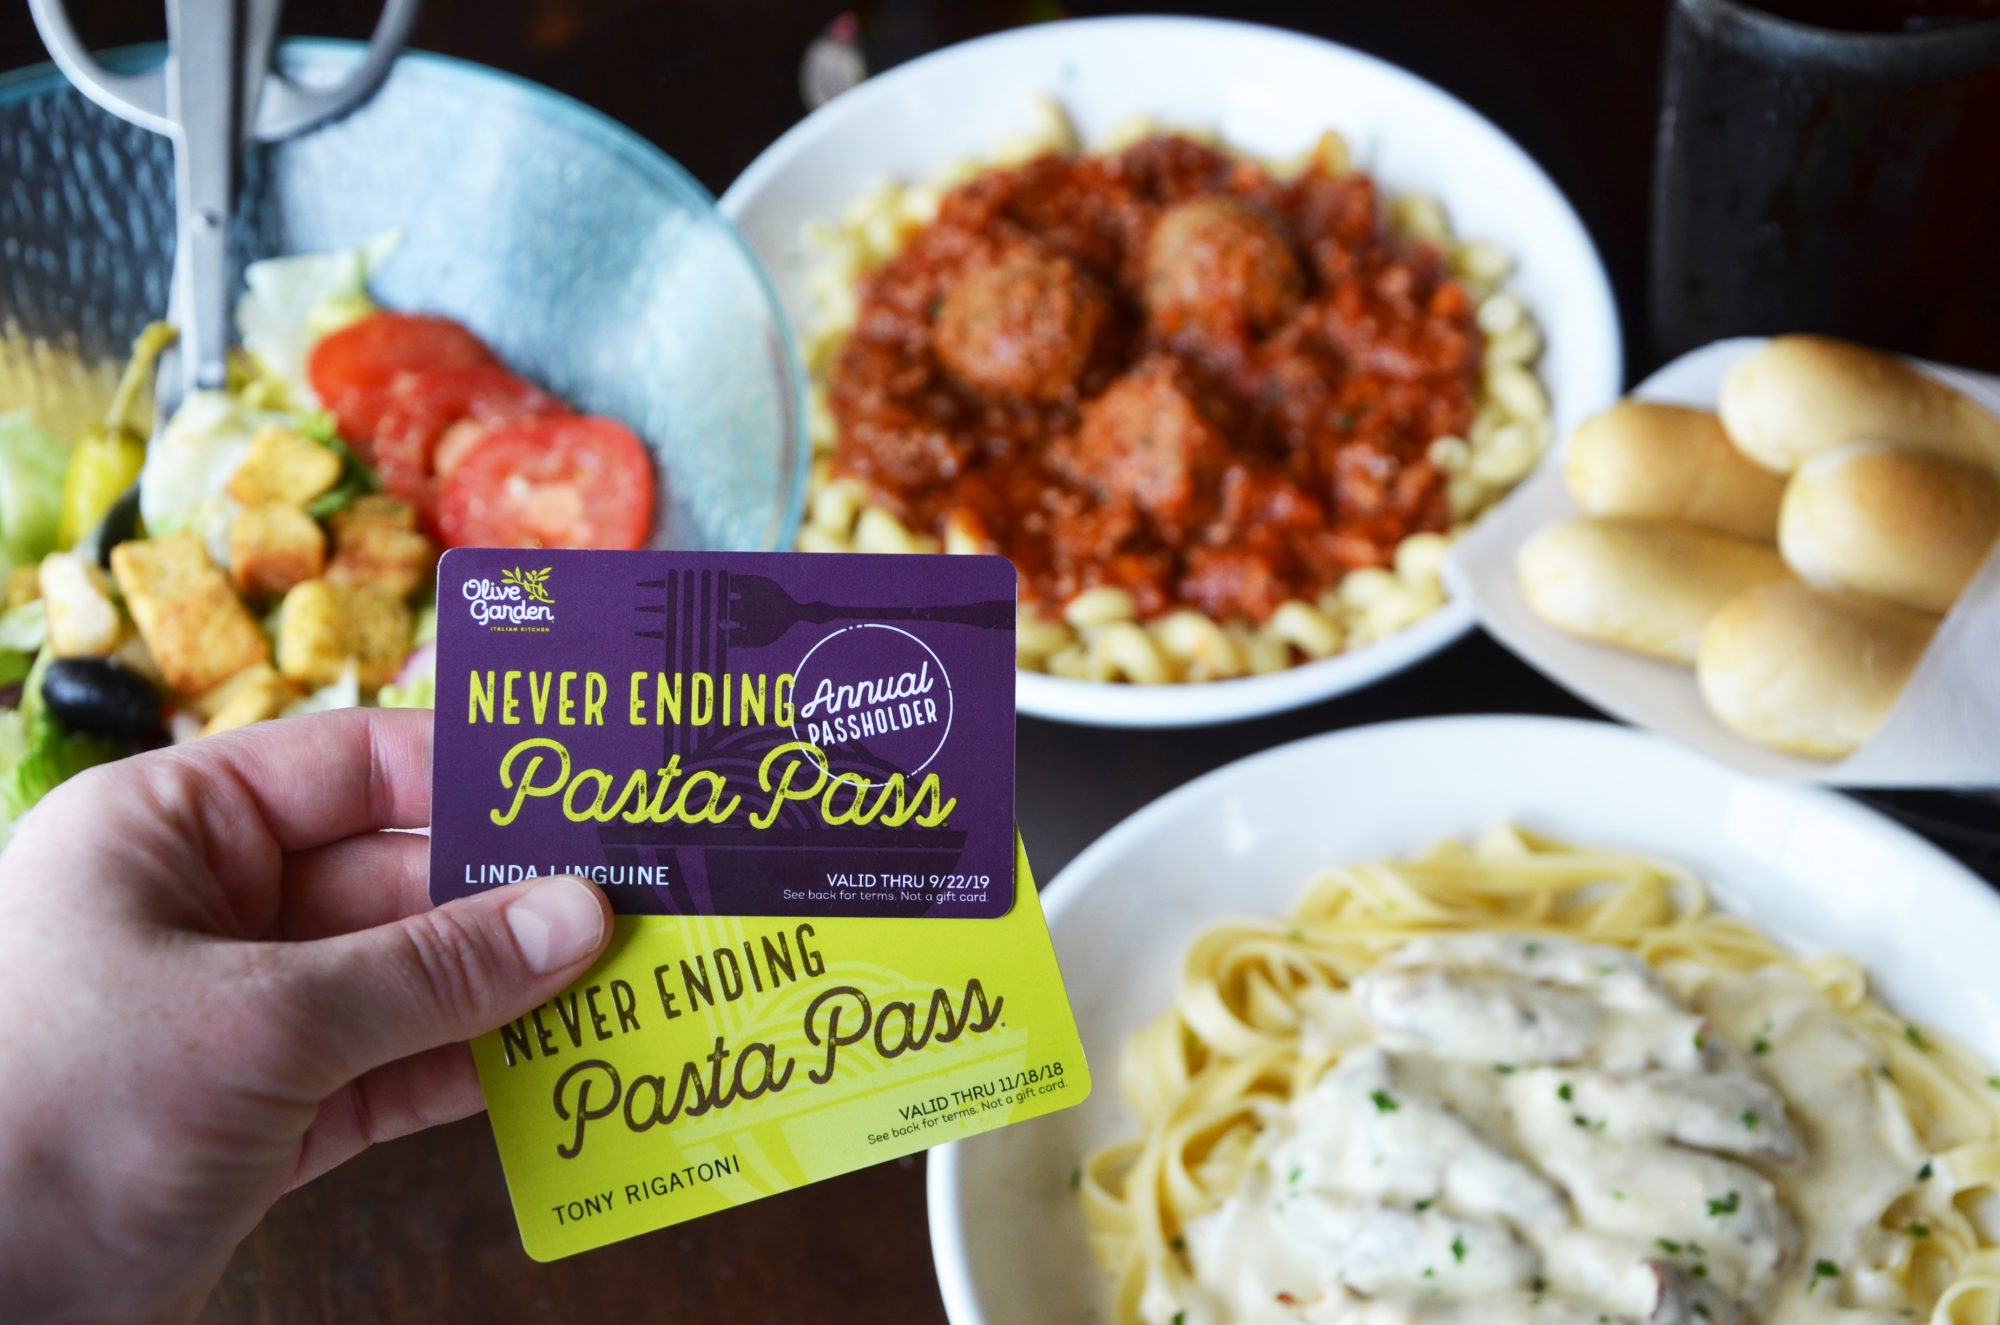 Olive Garden Has Upgraded Their Never Ending Pasta Pass in an Extreme Way